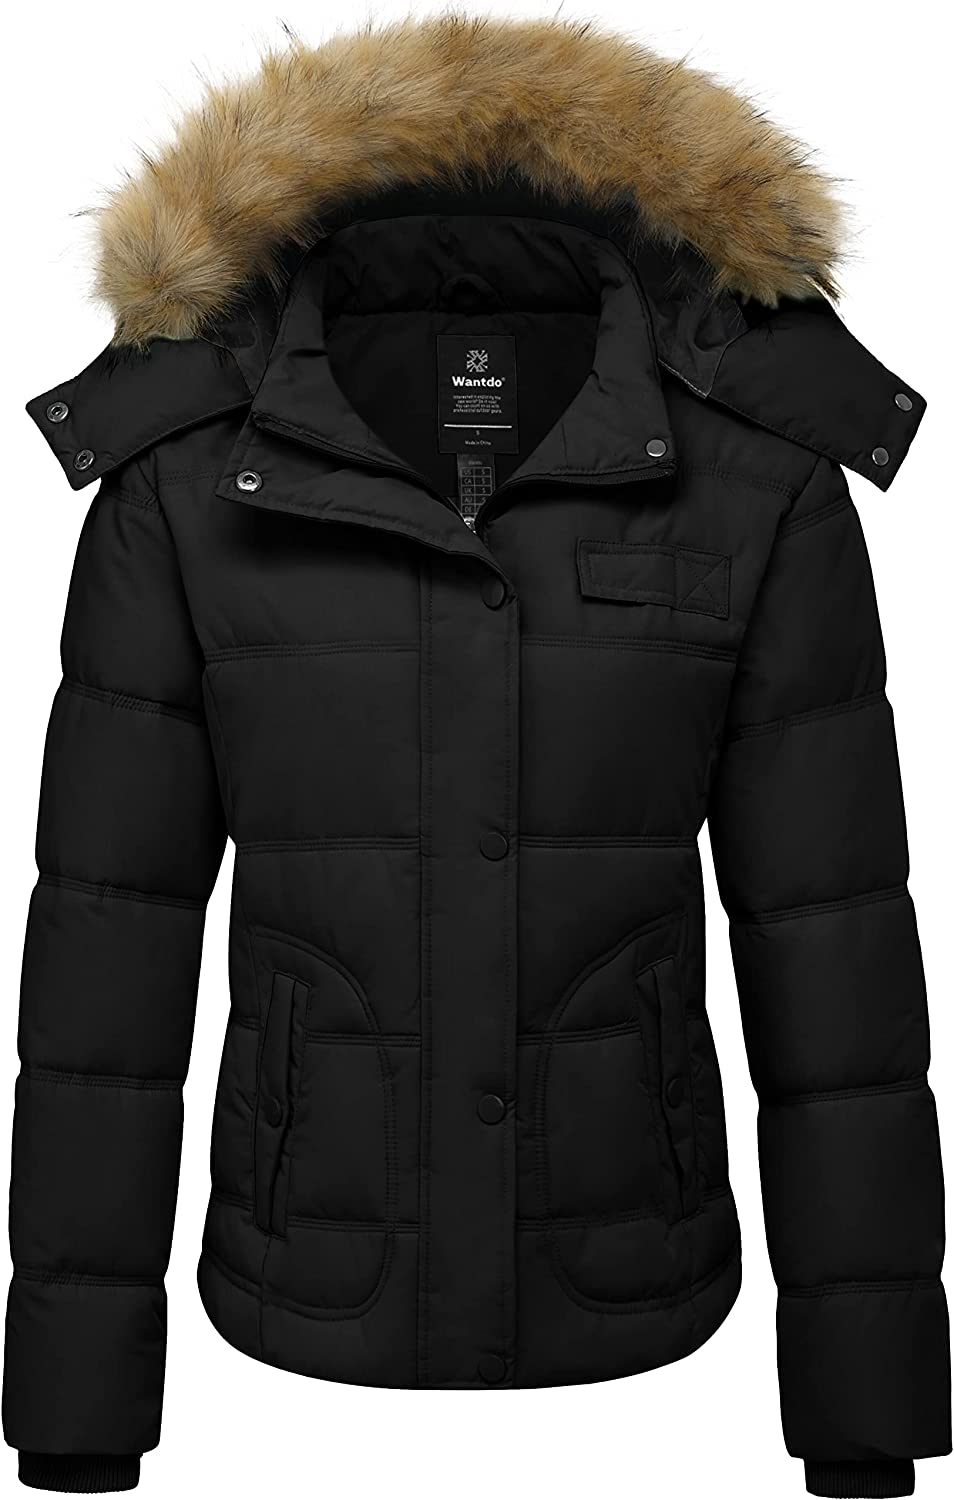 Wantdo Women's Hooded Winter Coat Thicken Quilted Puffer Jacket Warm Parka